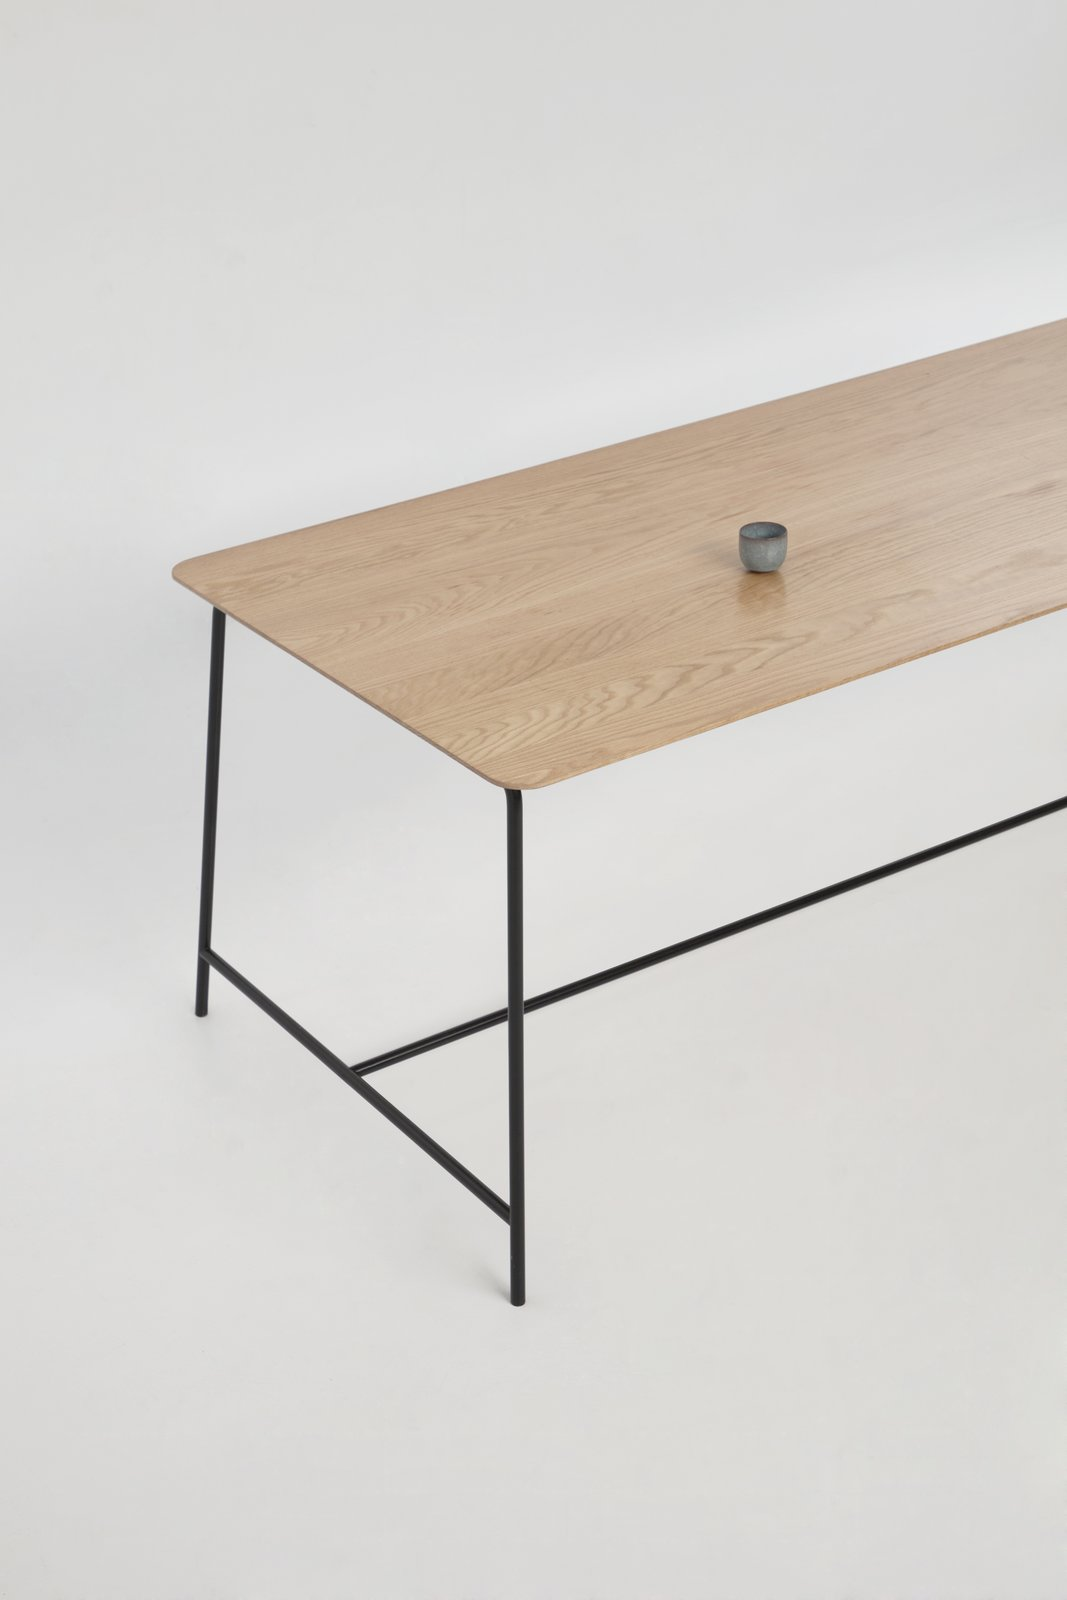 Dining Room and Table Dinning table T01 by Foraine  Saint-Laurent Apartment by Atelier Barda